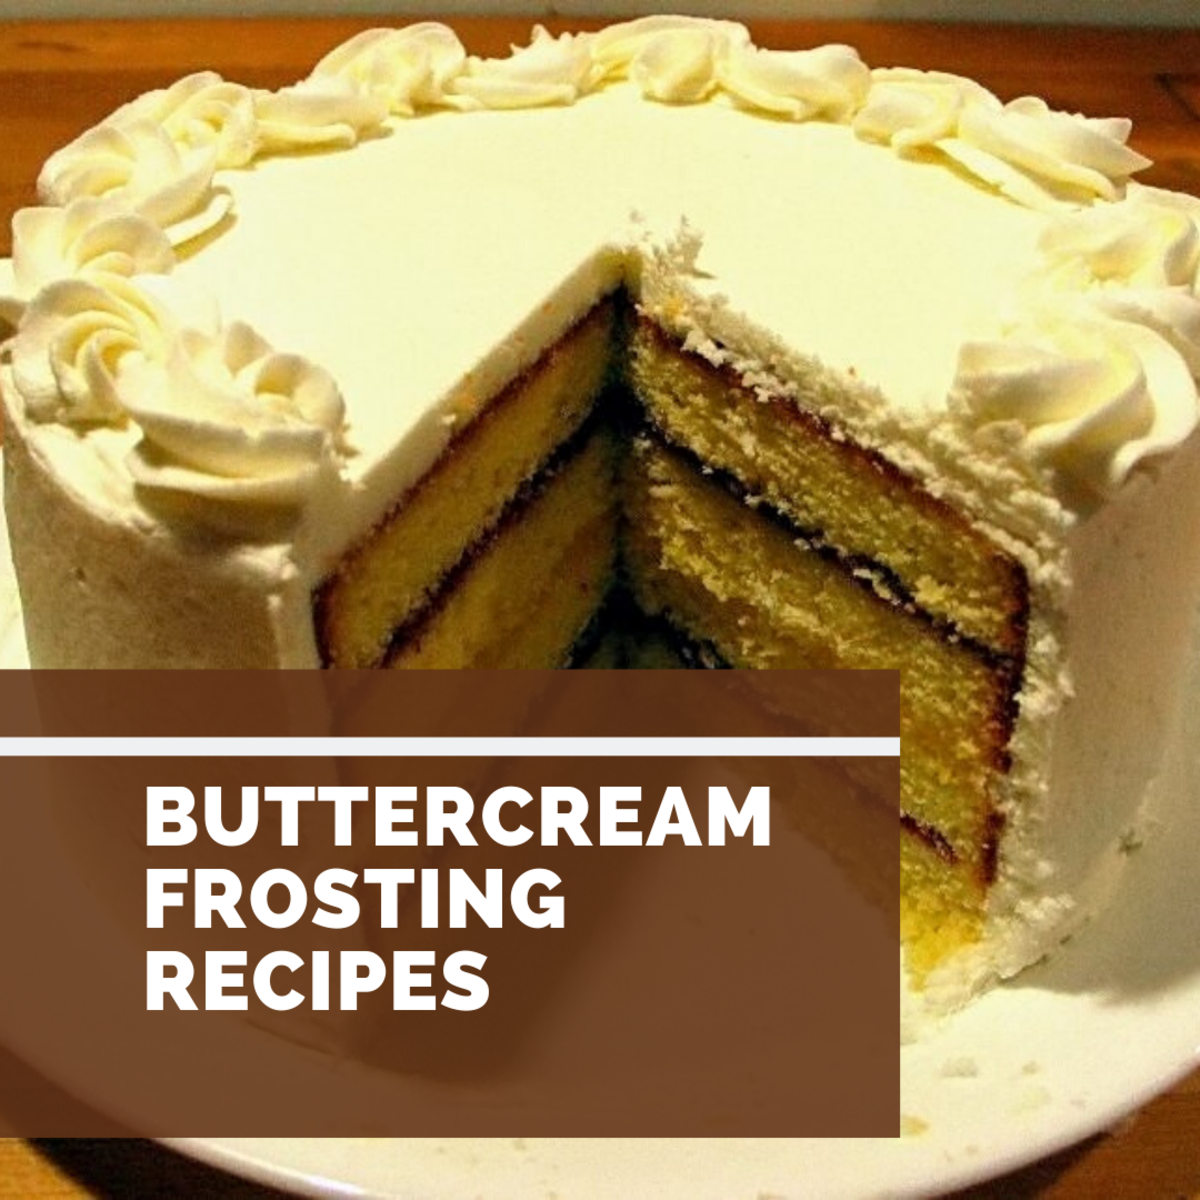 Love buttercream frosting? These recipes are perfect for you!